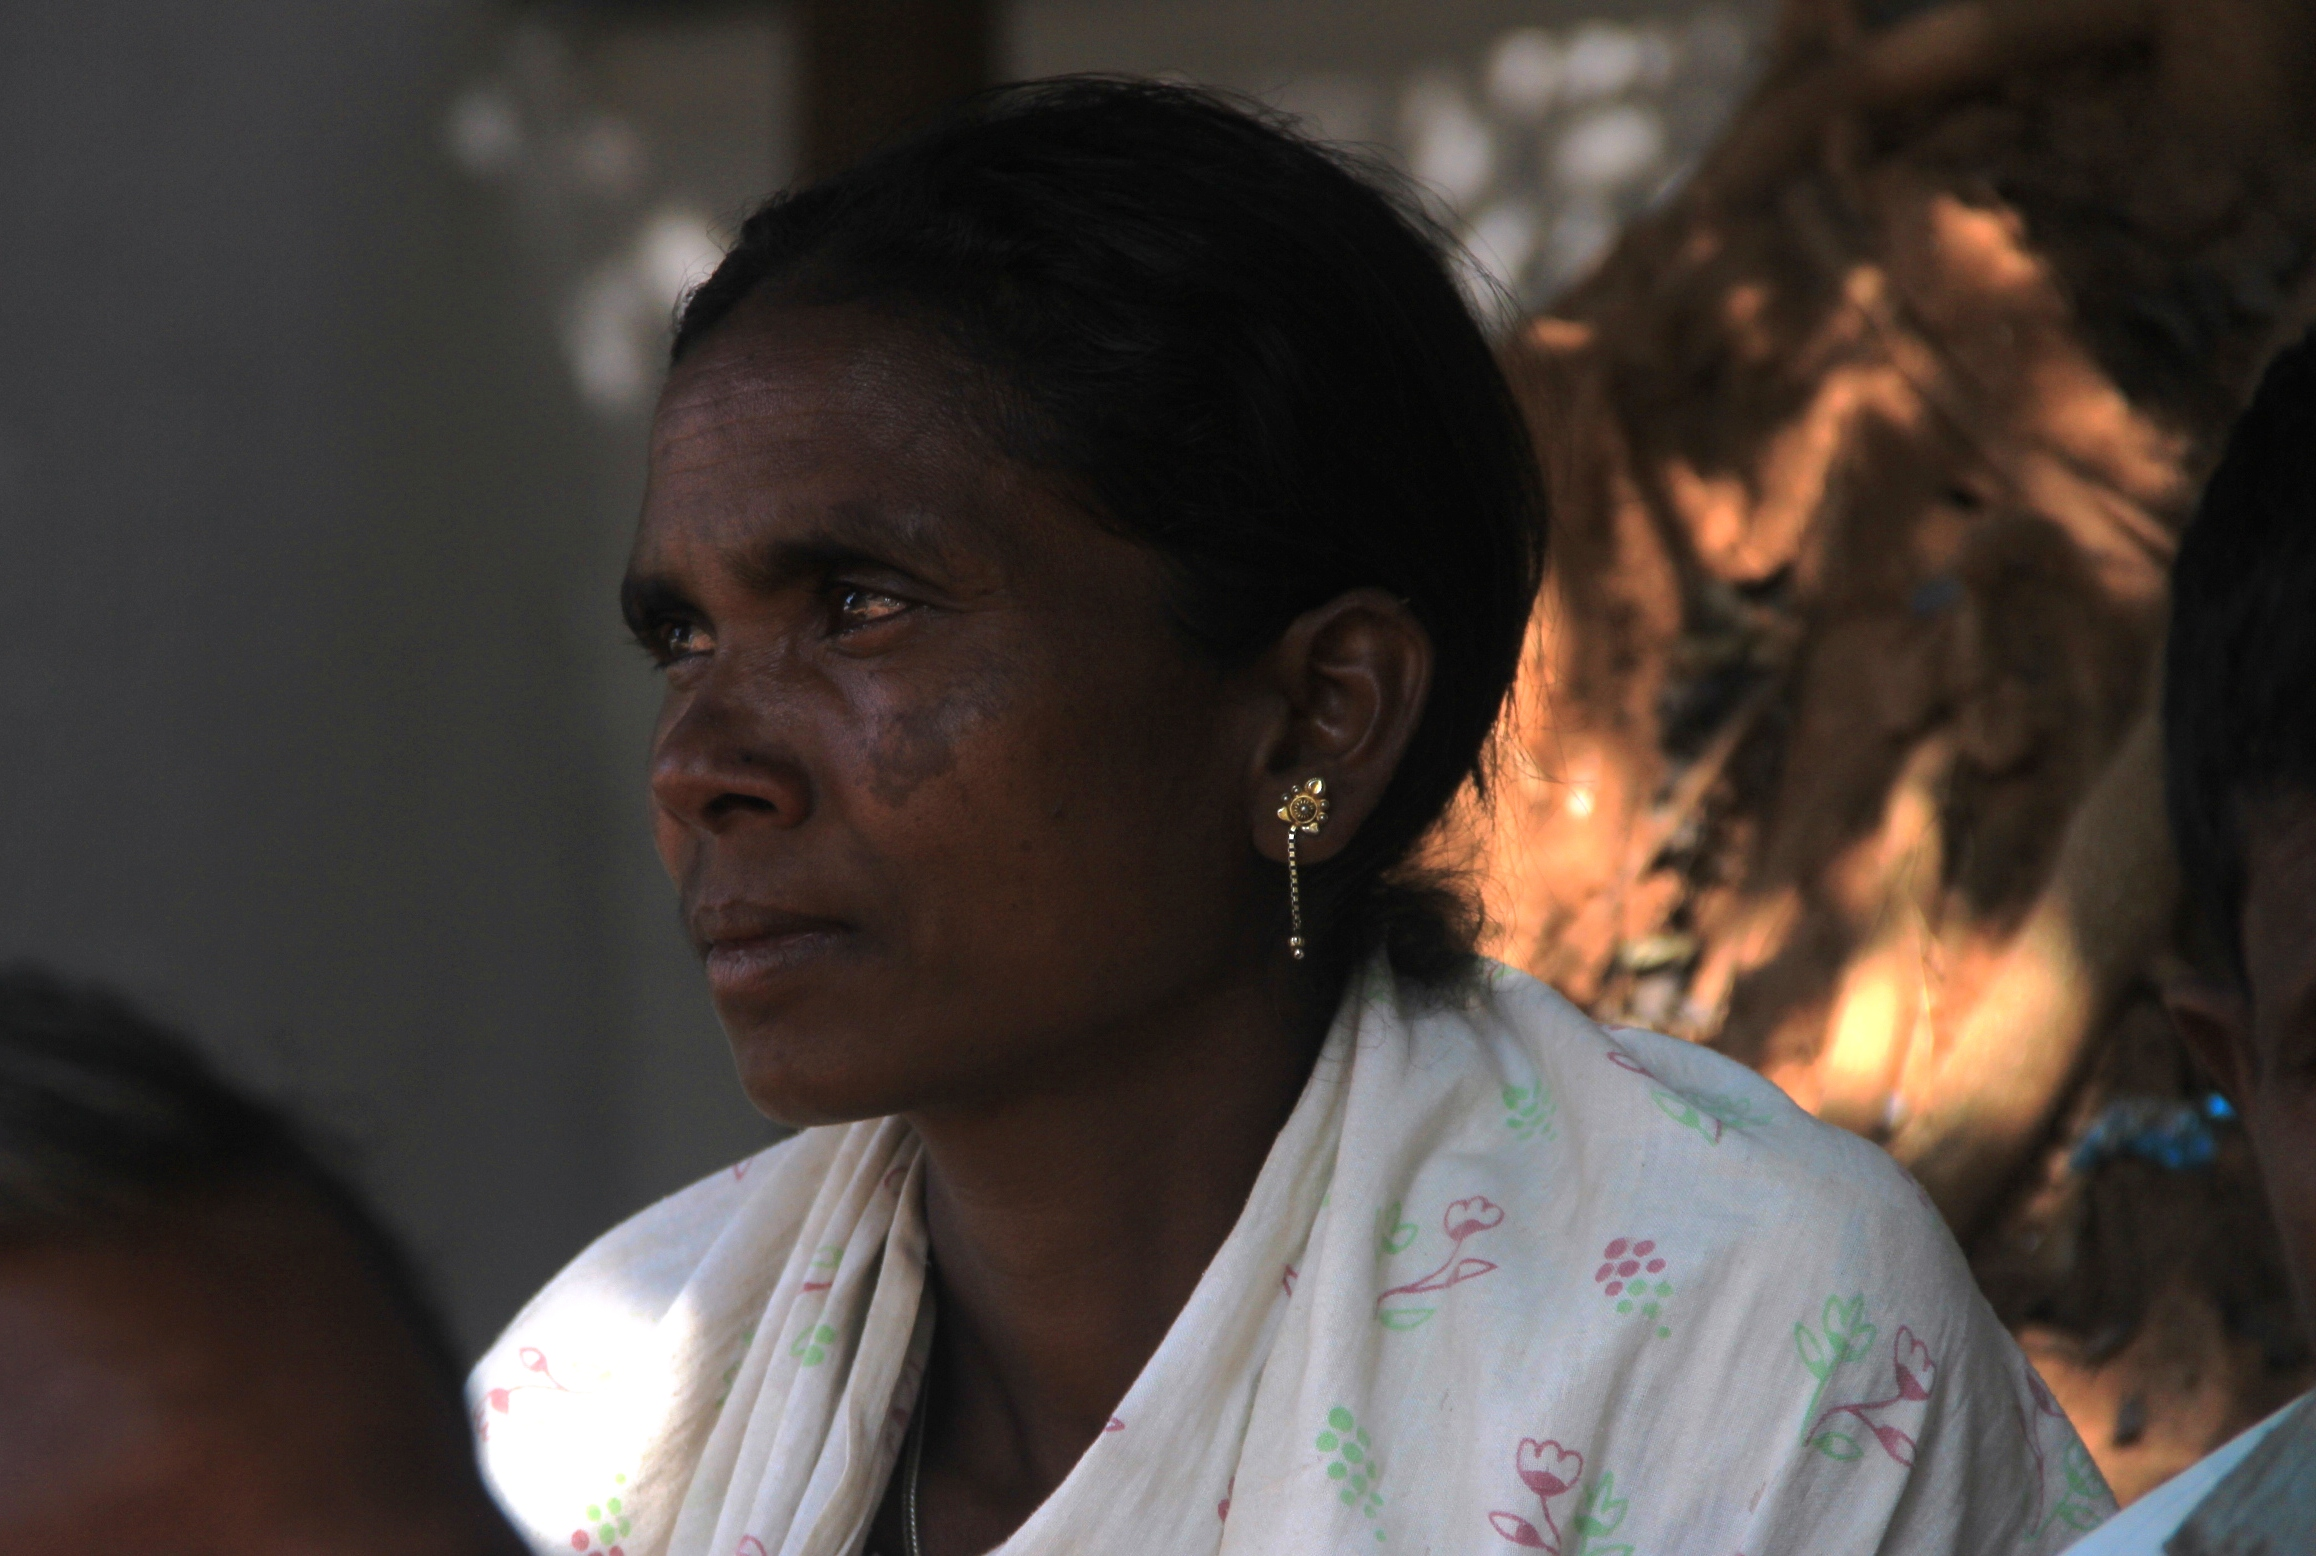 Budhri, the wife of an undertrial villager, charged with being a Maoist, waits outside the Dantewada court. Photo credit: Chitrangada Choudhury